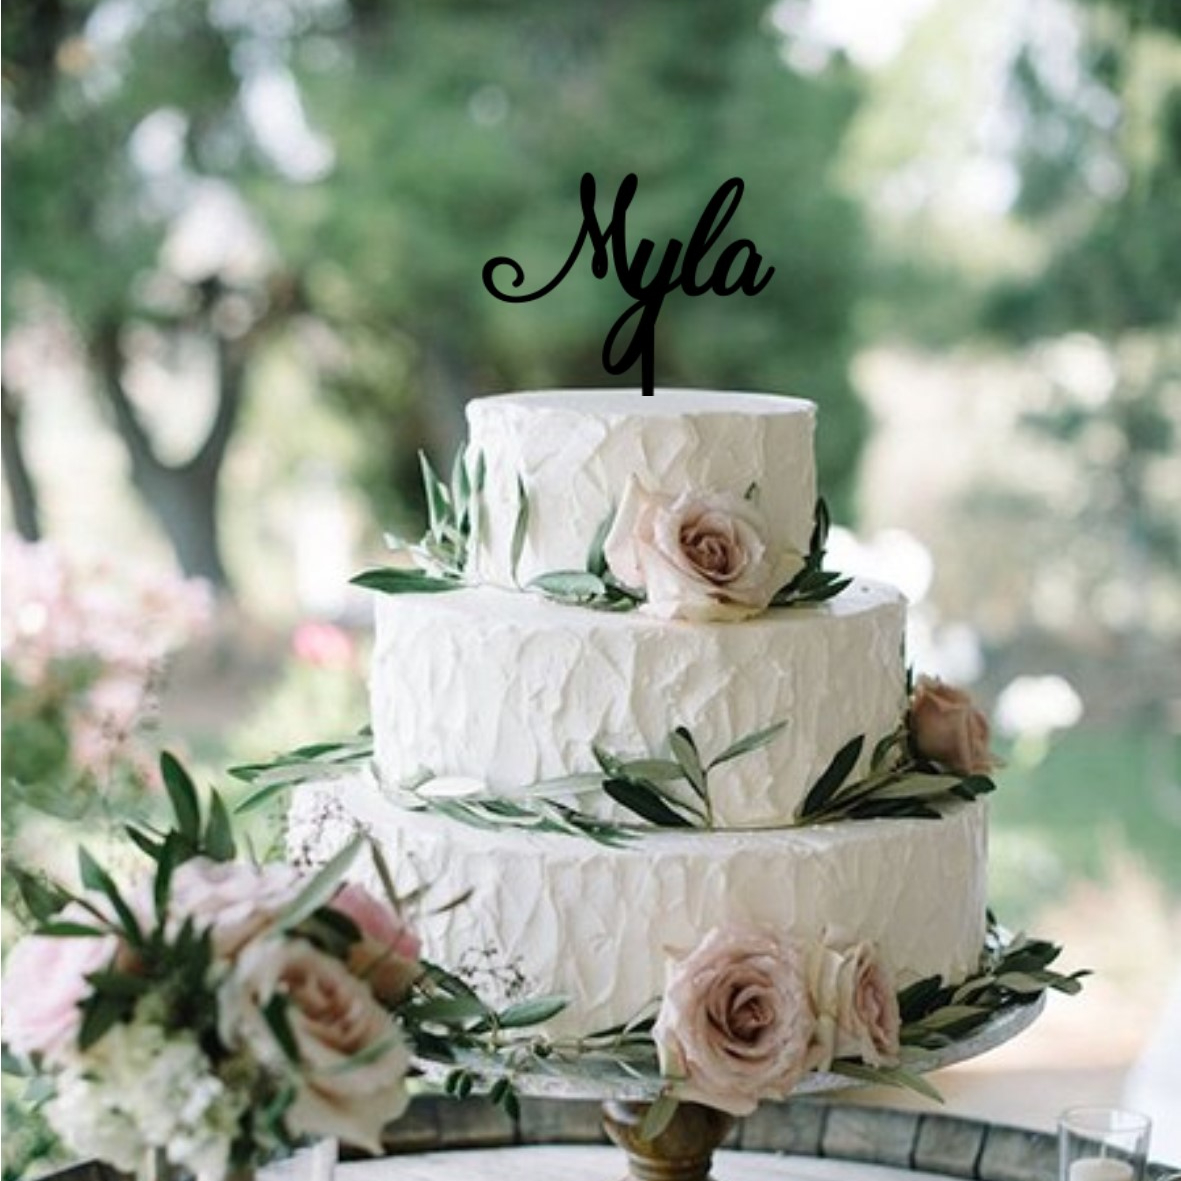 Quick Creations Cake Topper - Myla